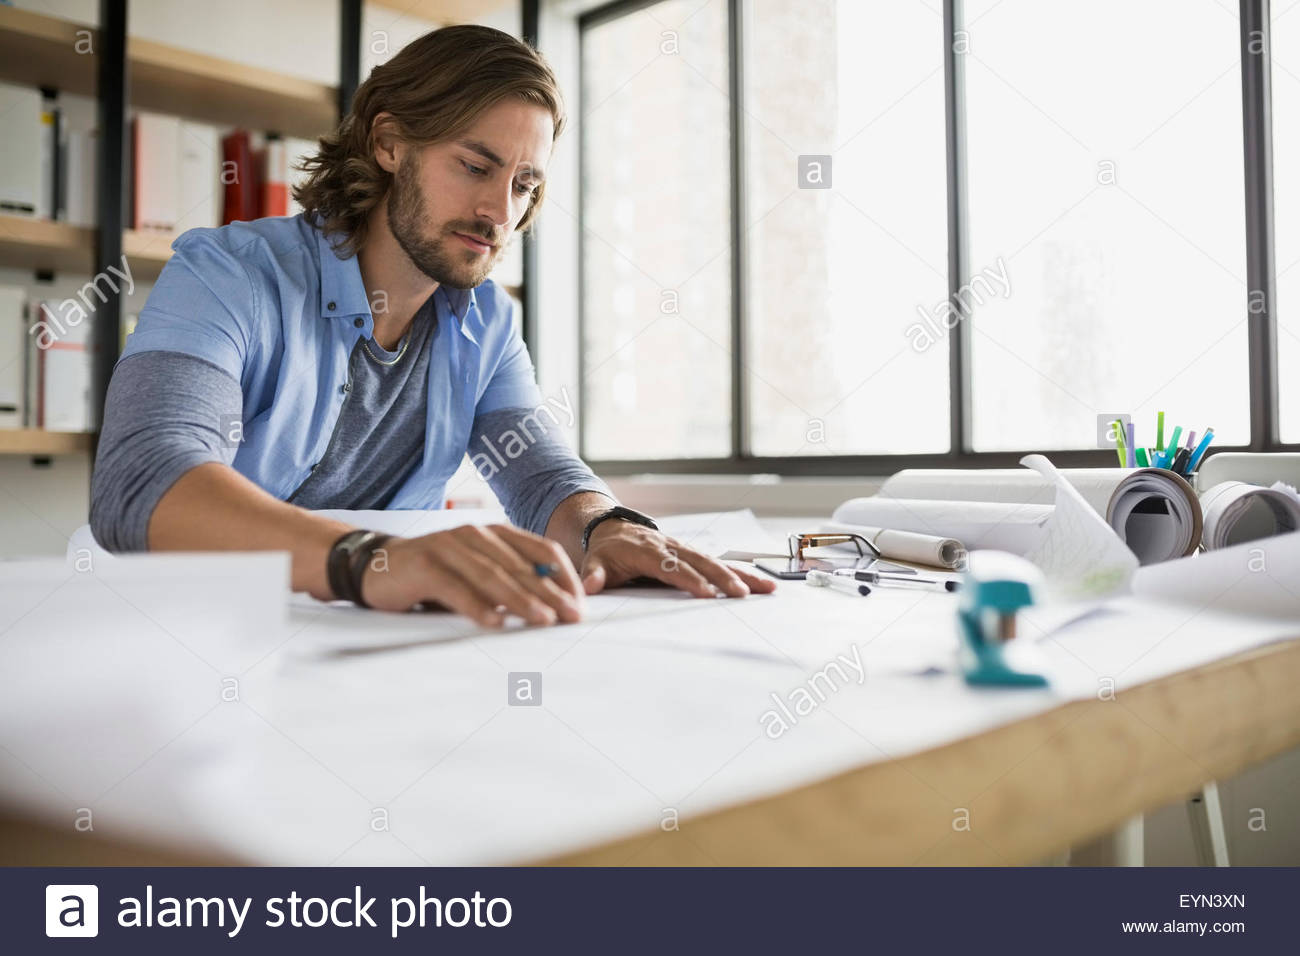 Architect drafting blueprints at table - Stock Image